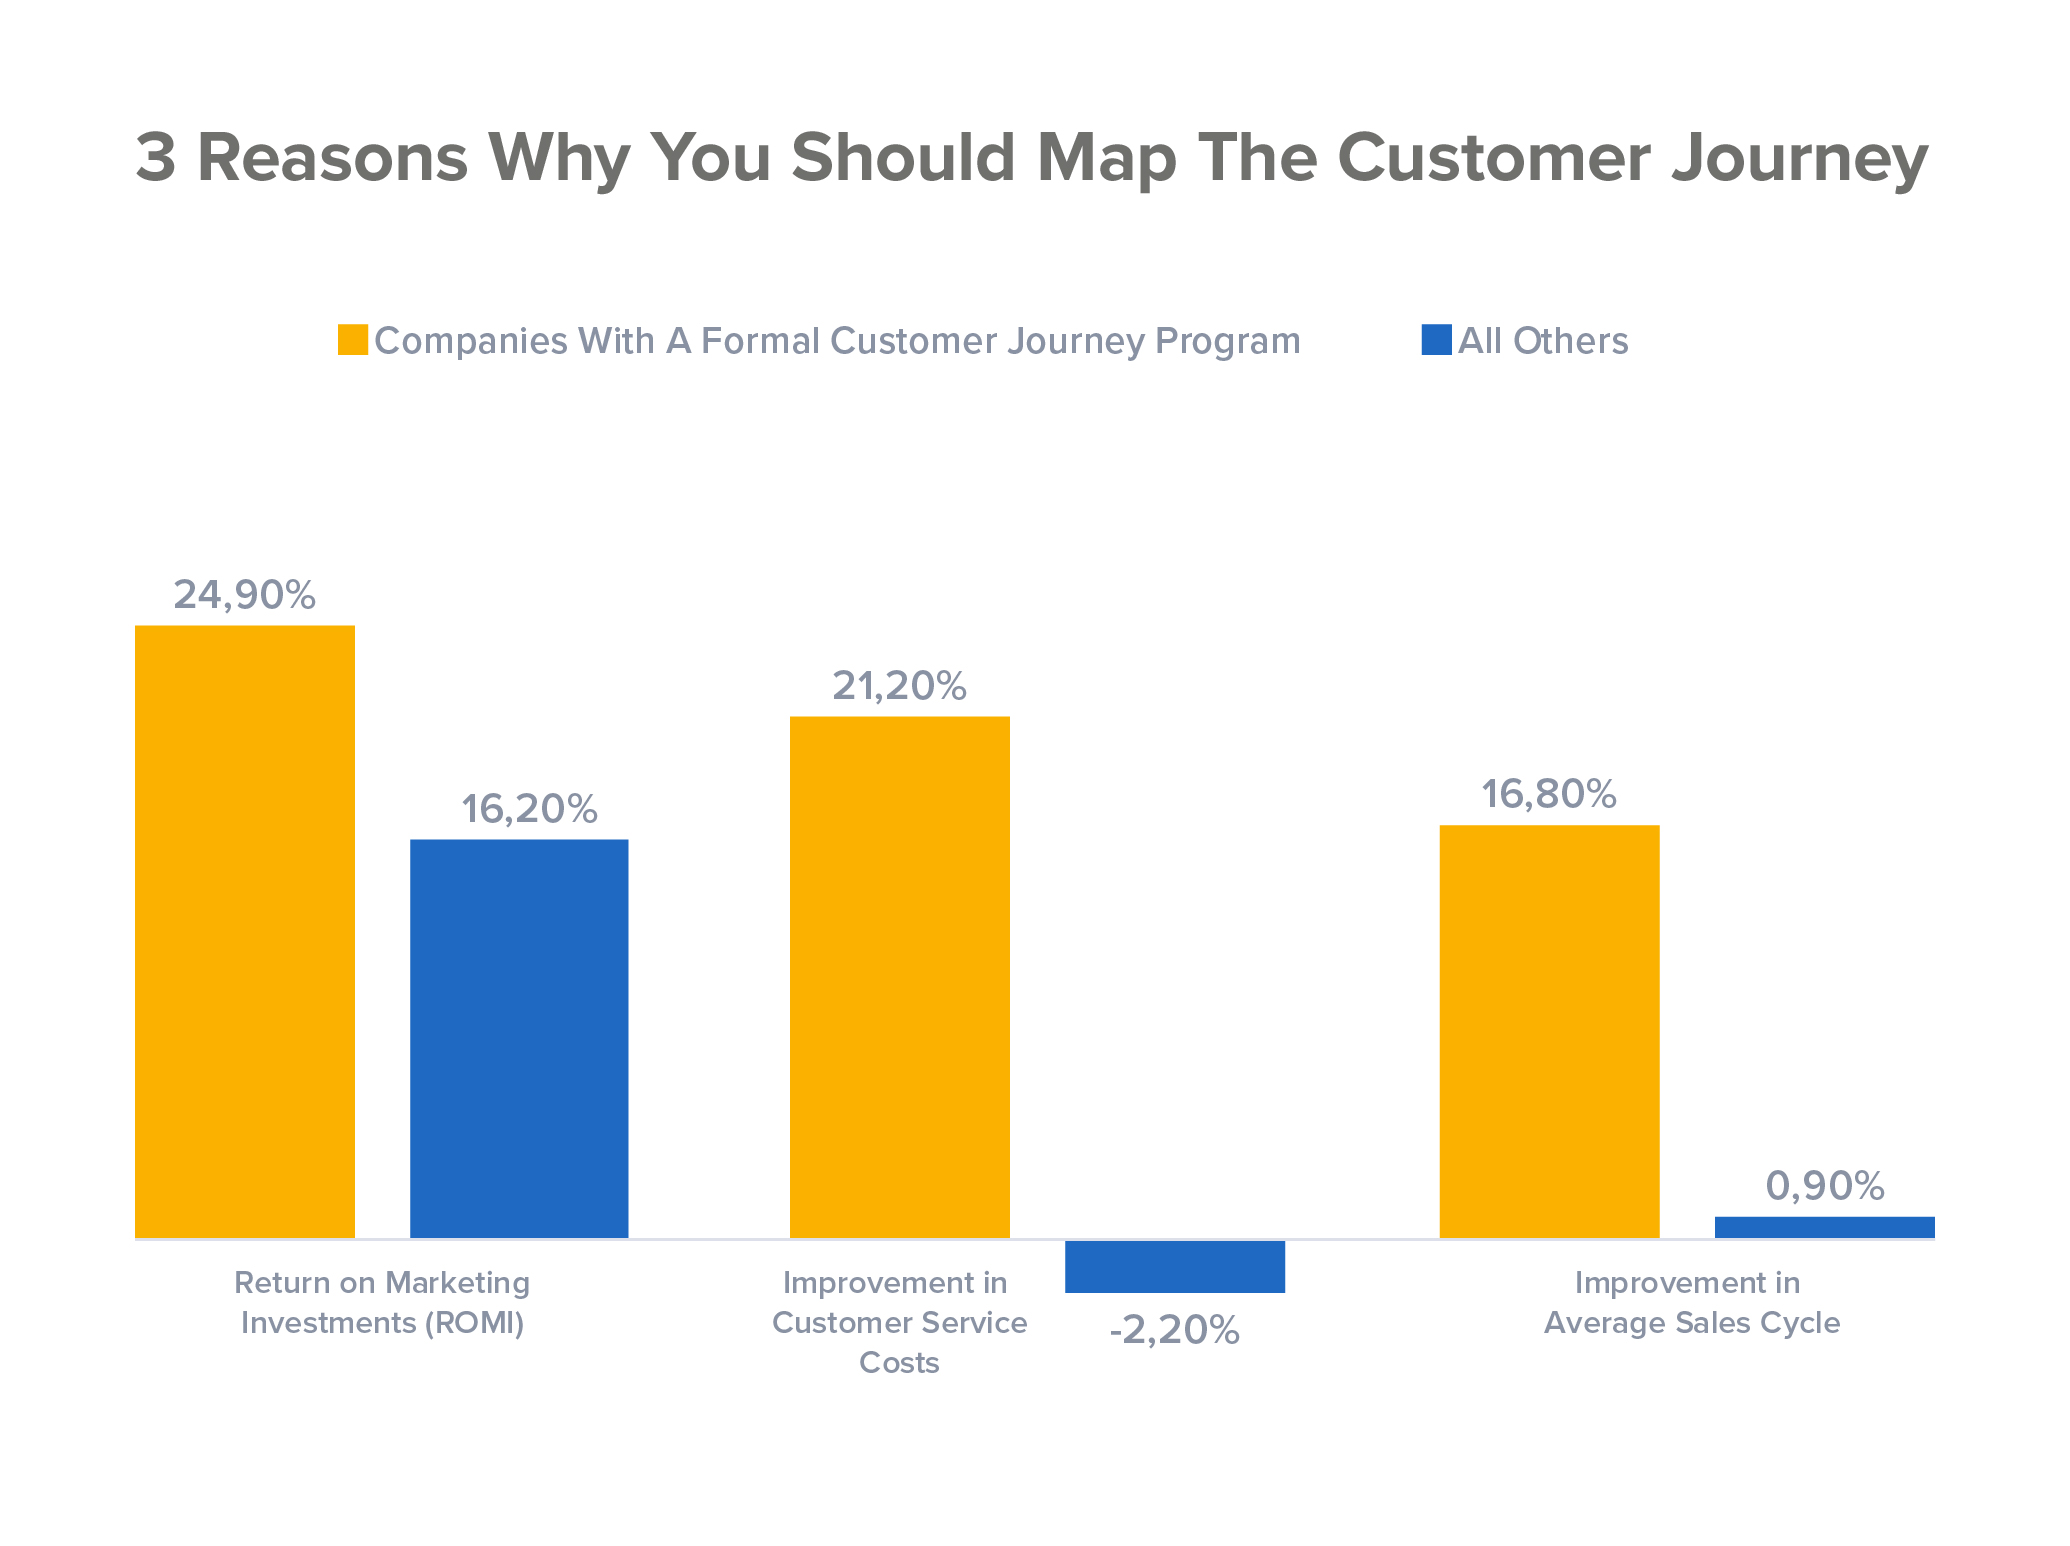 Customer journey strategy benefits